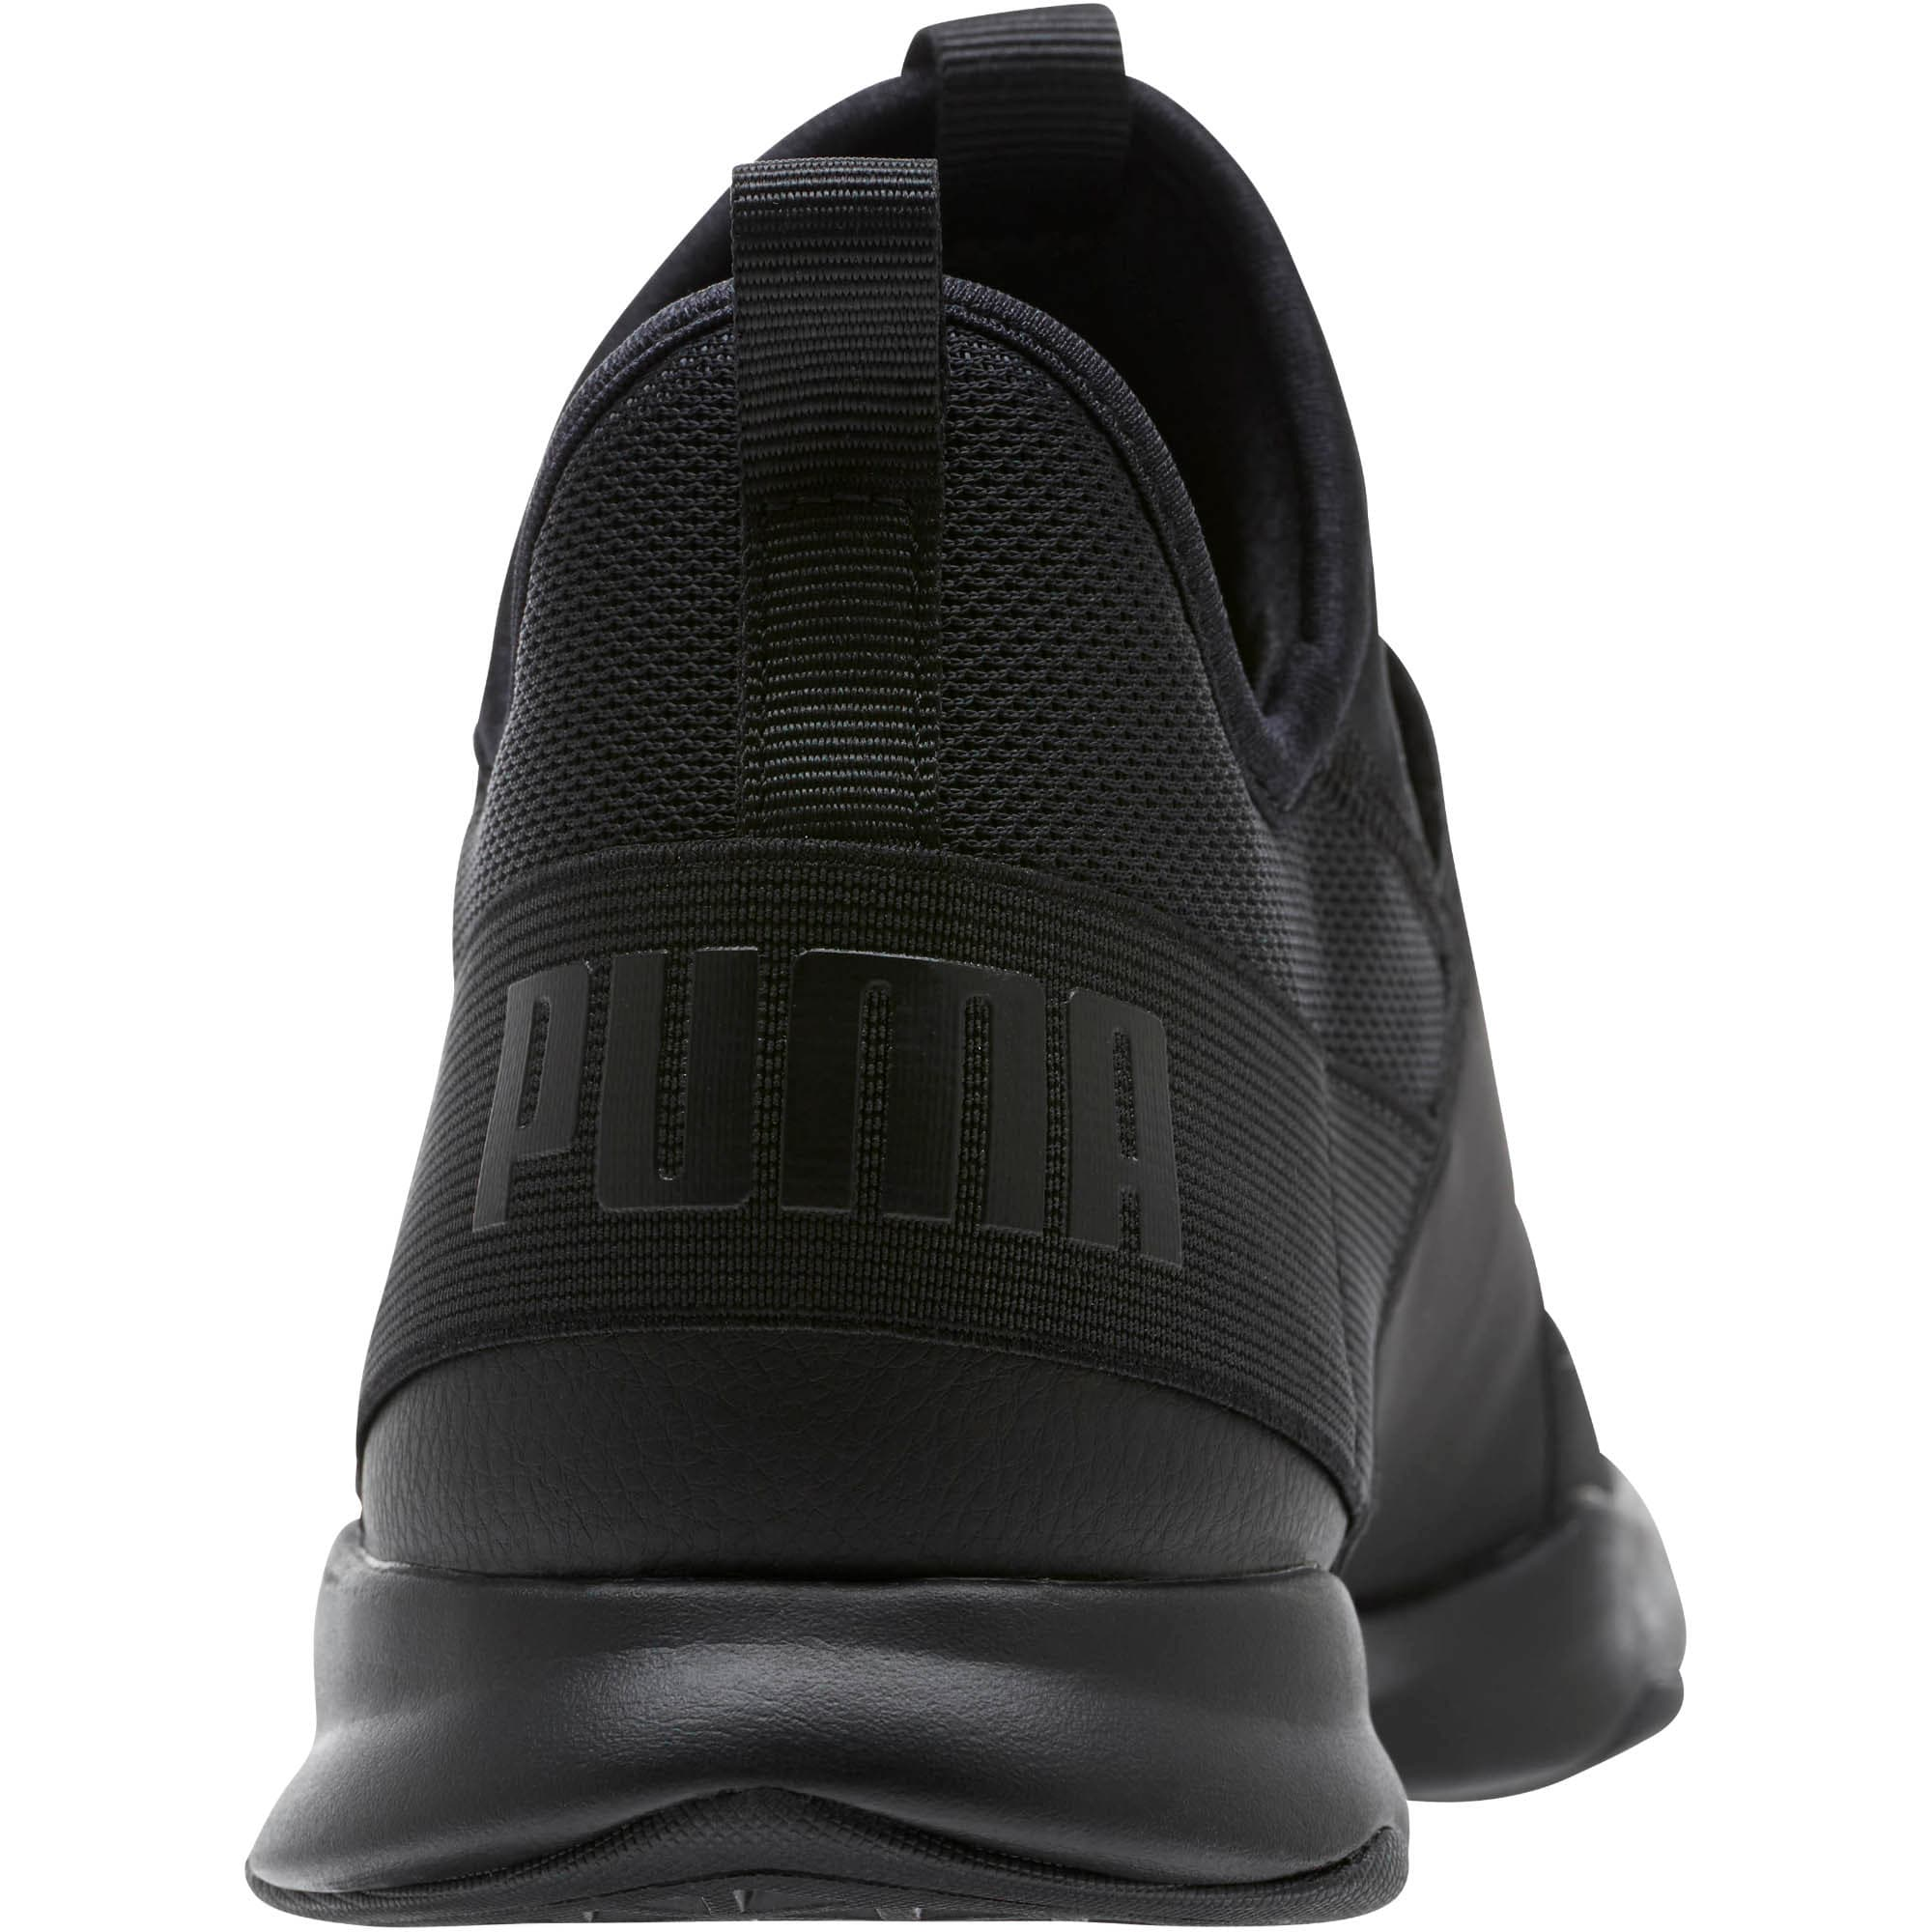 Thumbnail 4 of Dare Trainer Women's Trainers, Puma Black-Puma Black, medium